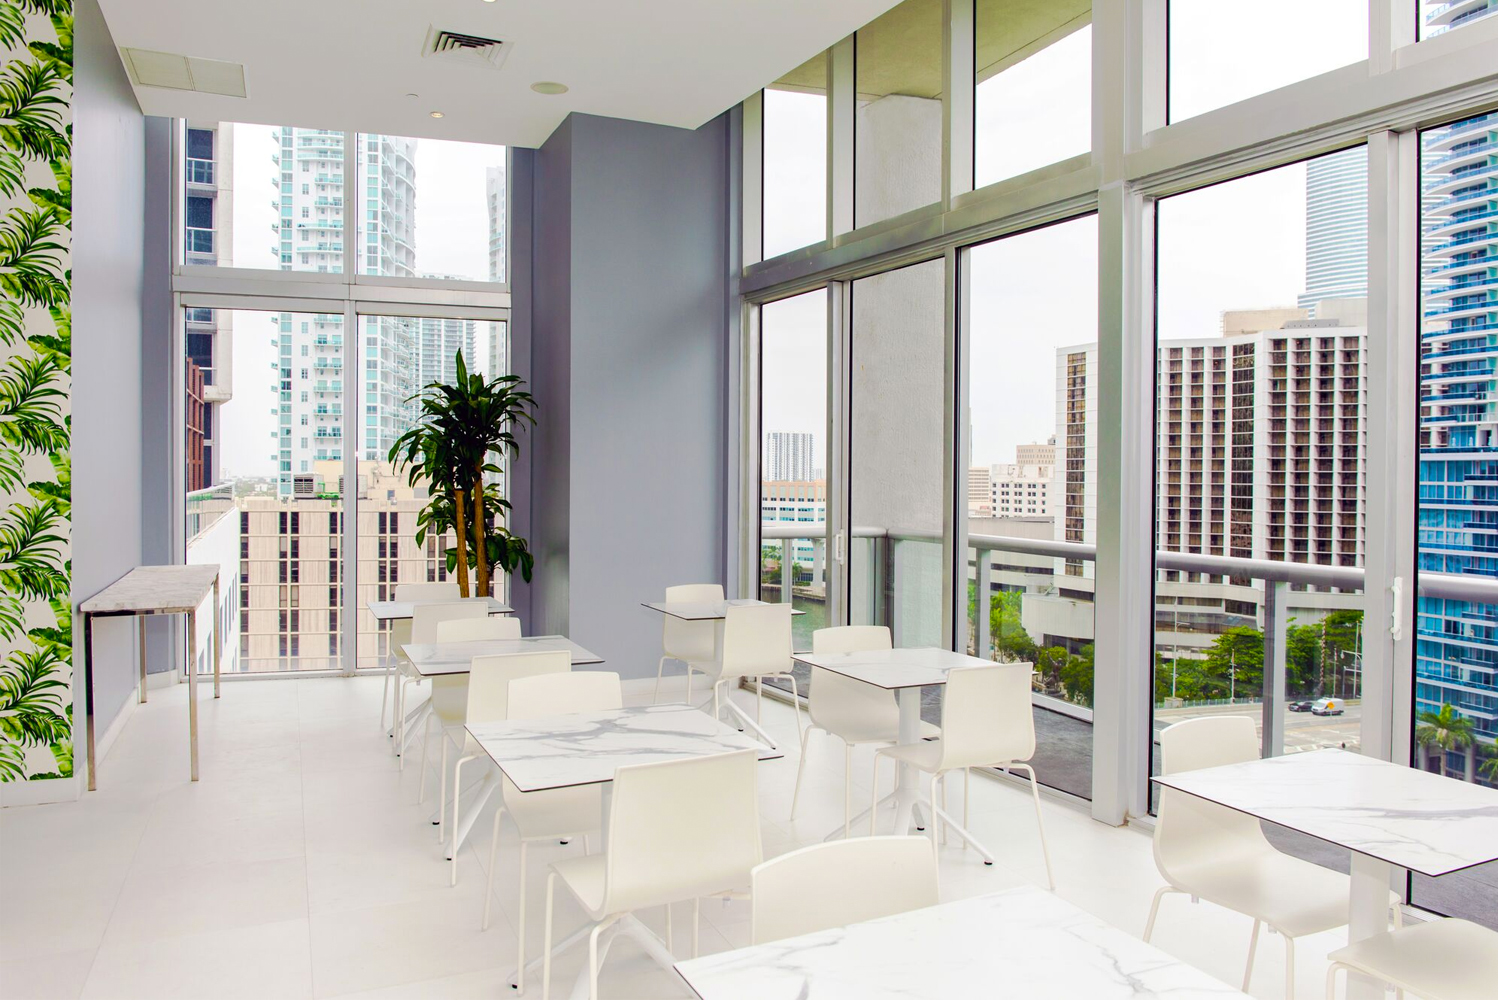 W Miami, a property located in the heart of Brickell, opened the hotel's WET Deck Café and introduced a new poolside menu.